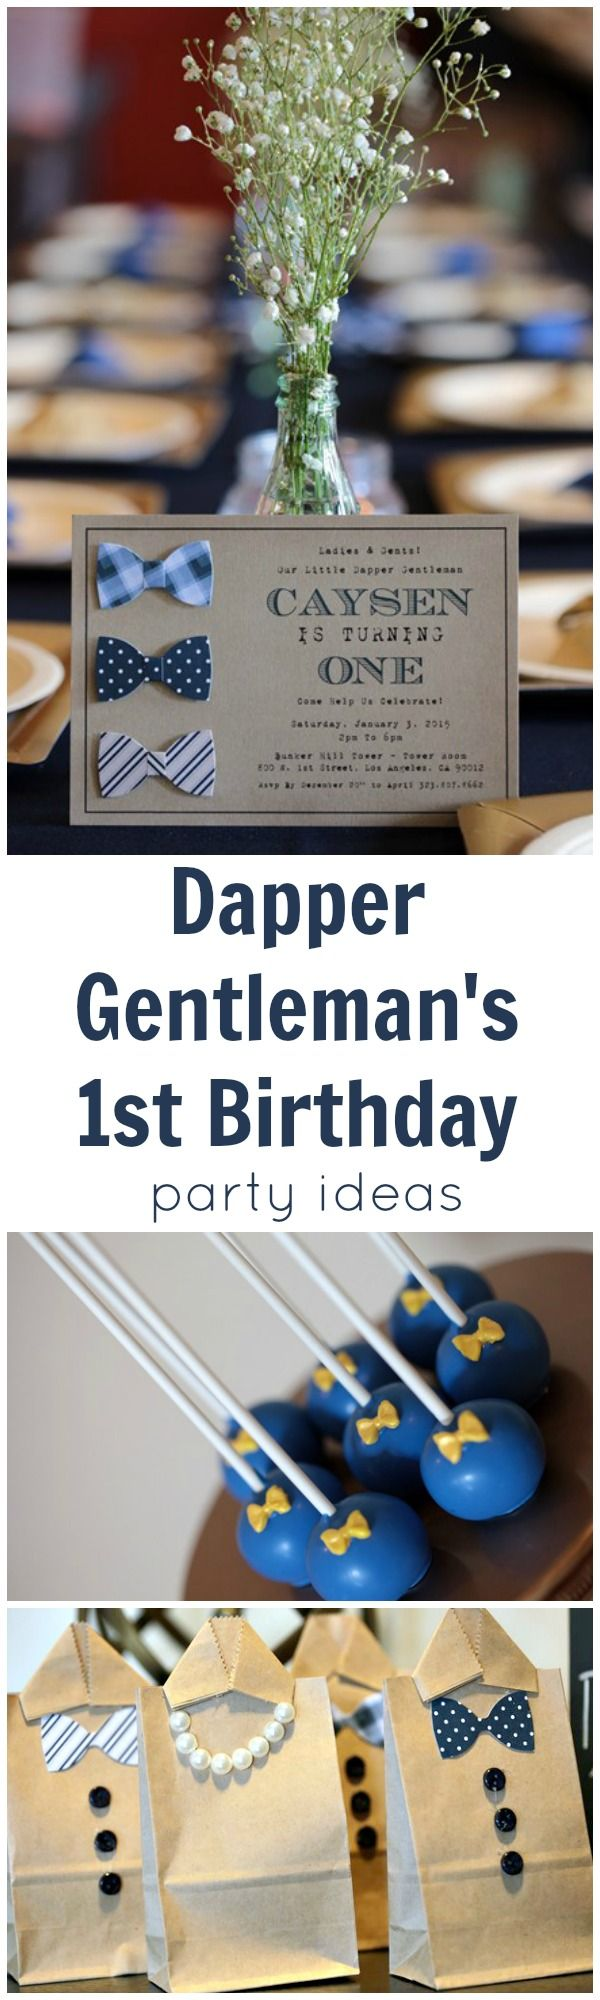 Dapper Gentleman's First Birthday Party Ideas #littleman